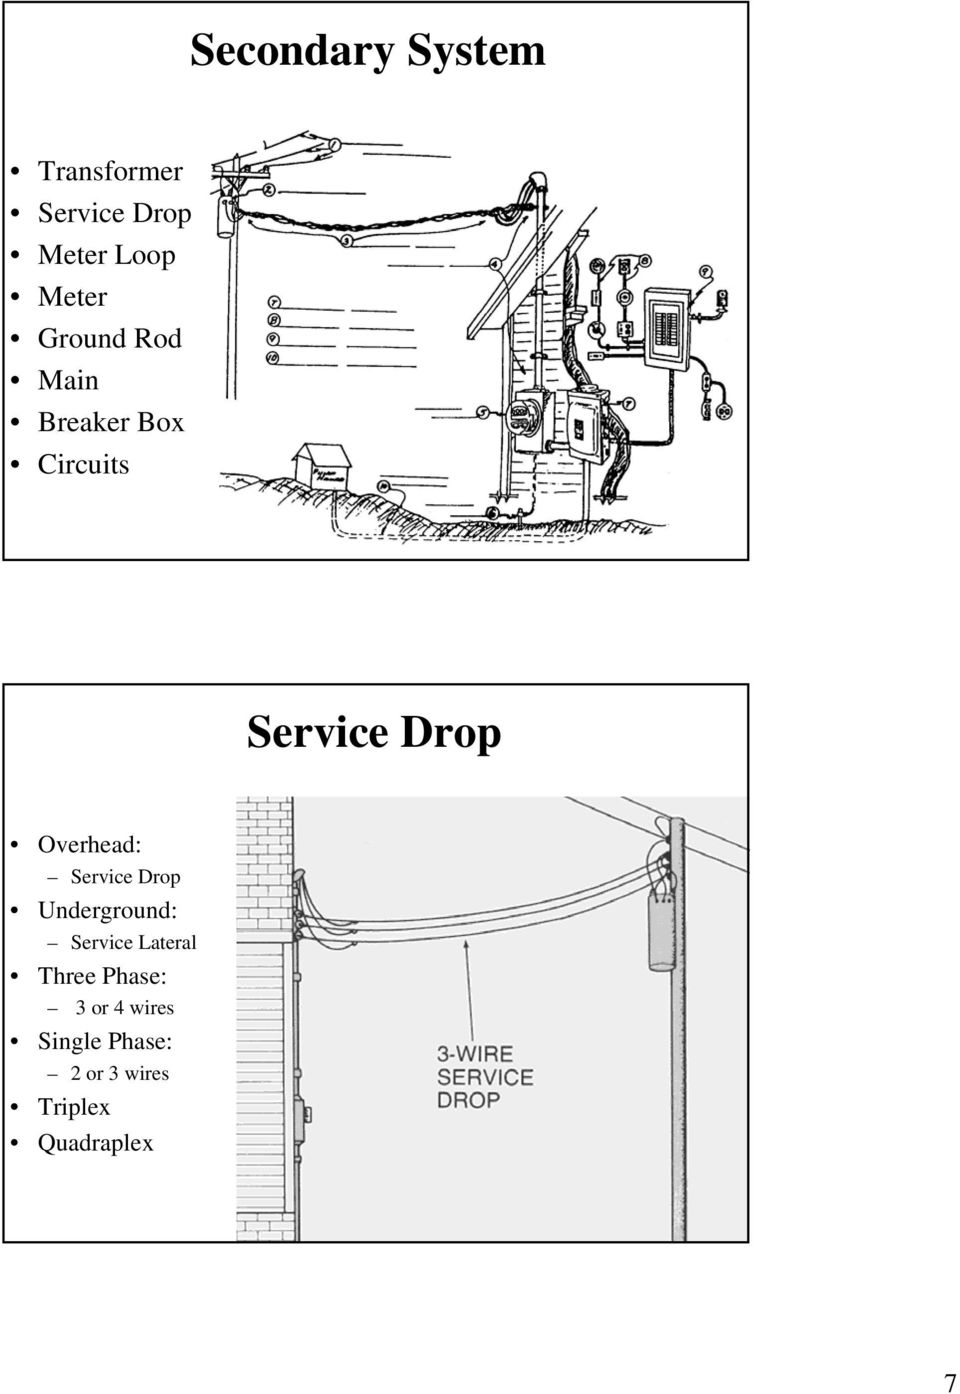 Single Phase Service : Services three phase service pdf